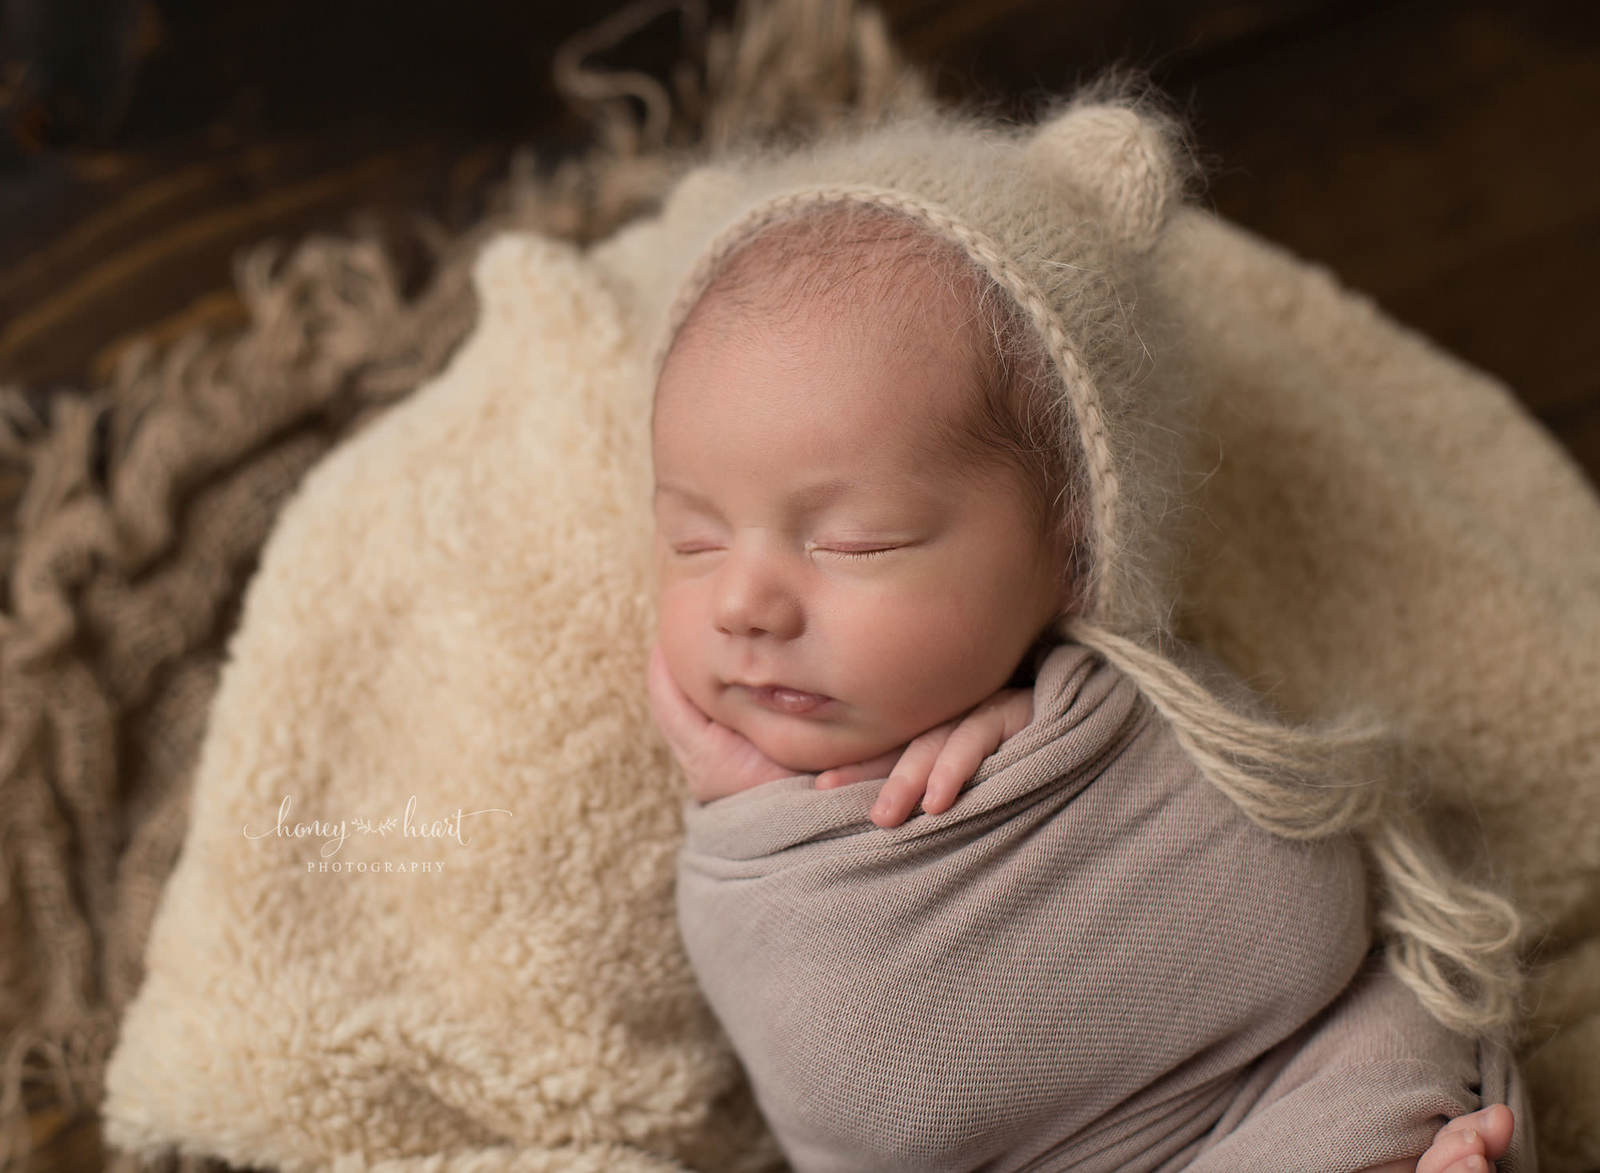 new baby wrapped in neutral earth tone colours wearing handmade knitted bonnet with ears newborn photographer calgary photography studio session